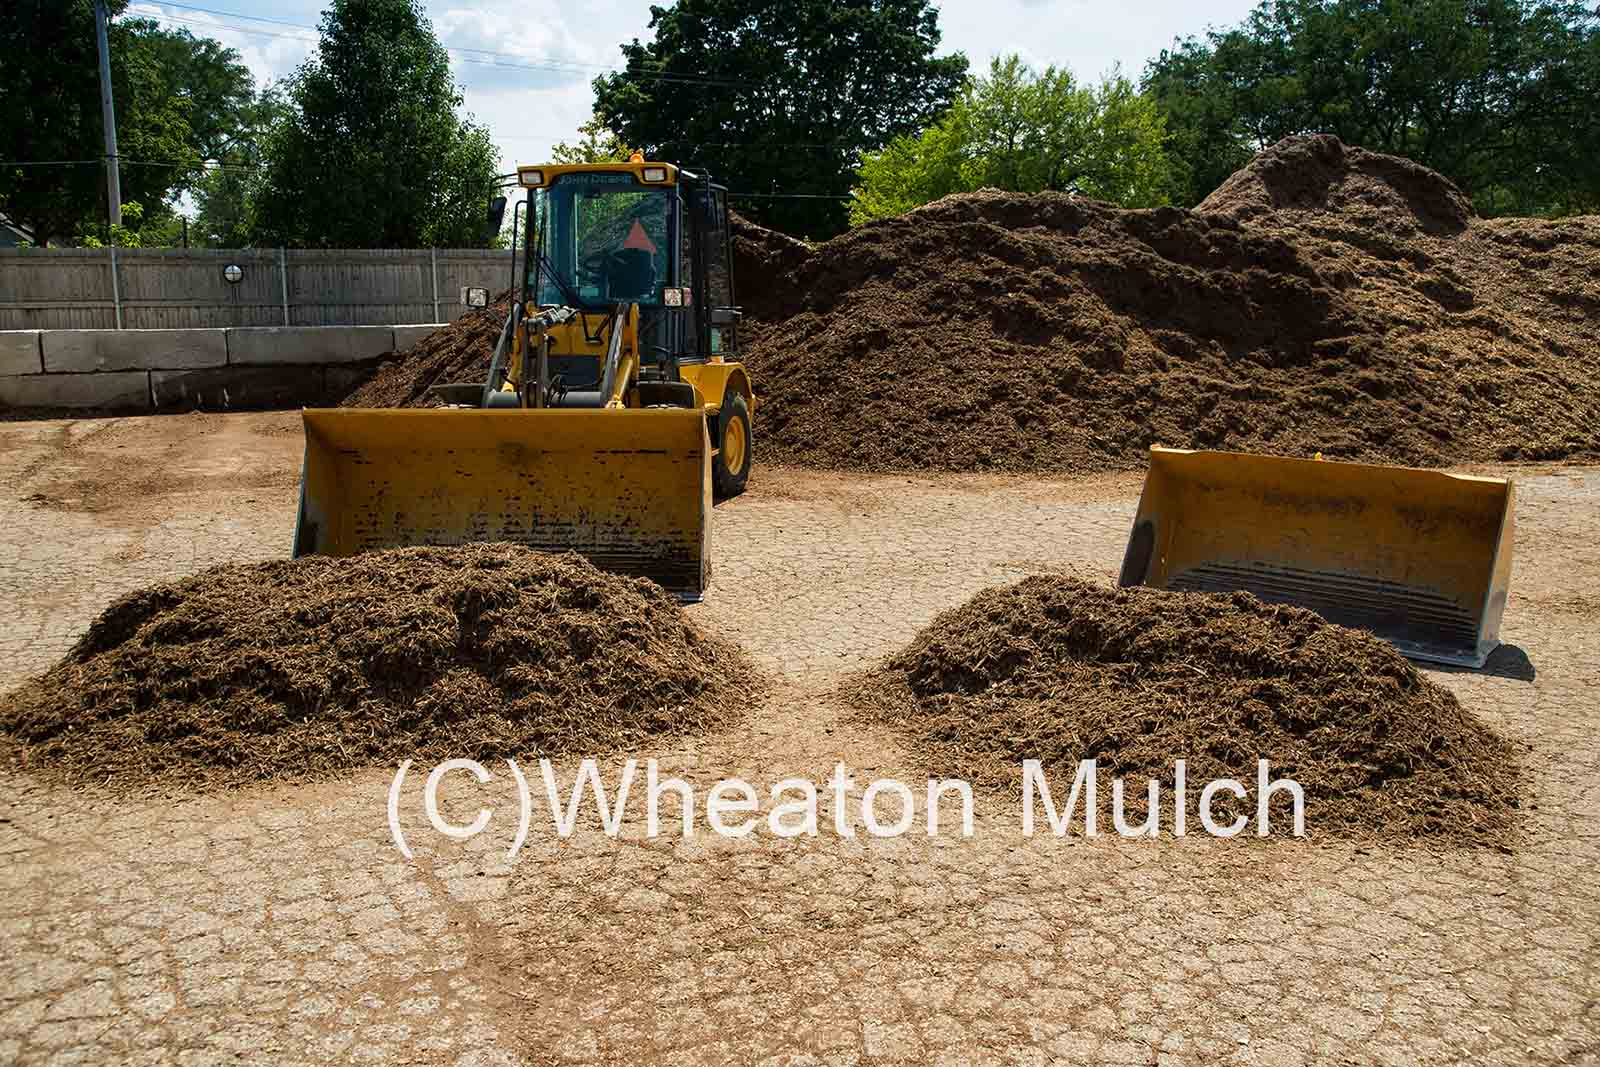 One cubic yard 28 images topsoil calculator photo for Soil removal calculator